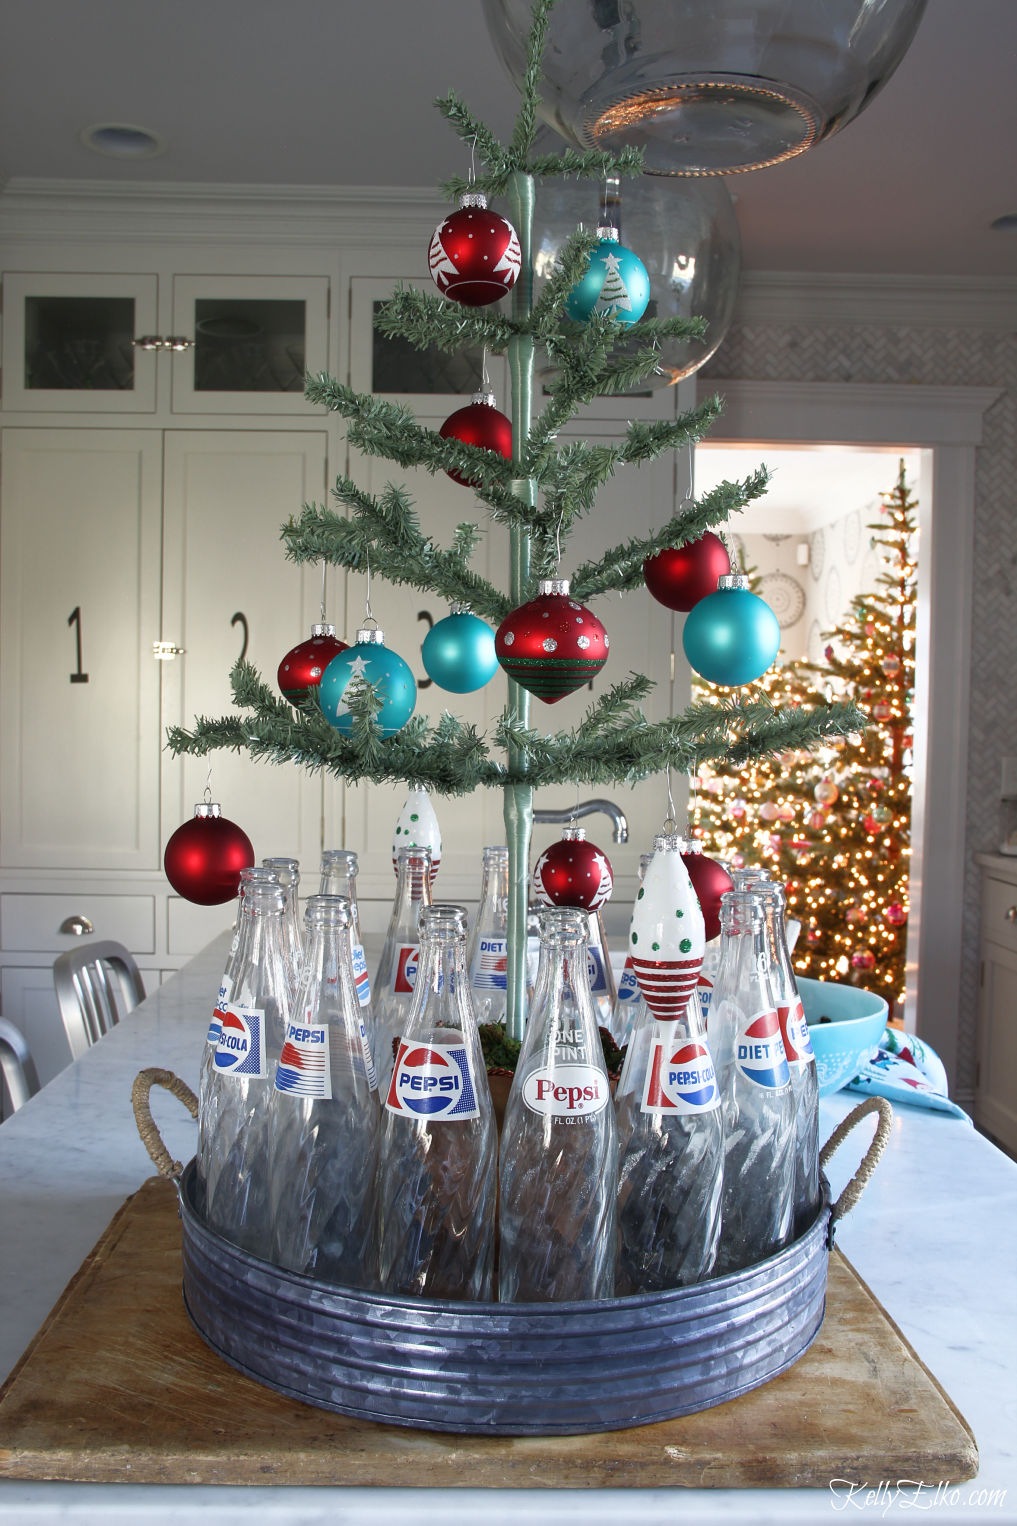 She always has the best Christmas ideas like this feather tree surrounded by vintage Pepsi bottles kellyelko.com #christmas #christmastree #christmasdecor #christmasdecorations #vintagechristmas #christmaskitchen #christmasornaments #farmhousechristmas #diychristmas #christmascrafts